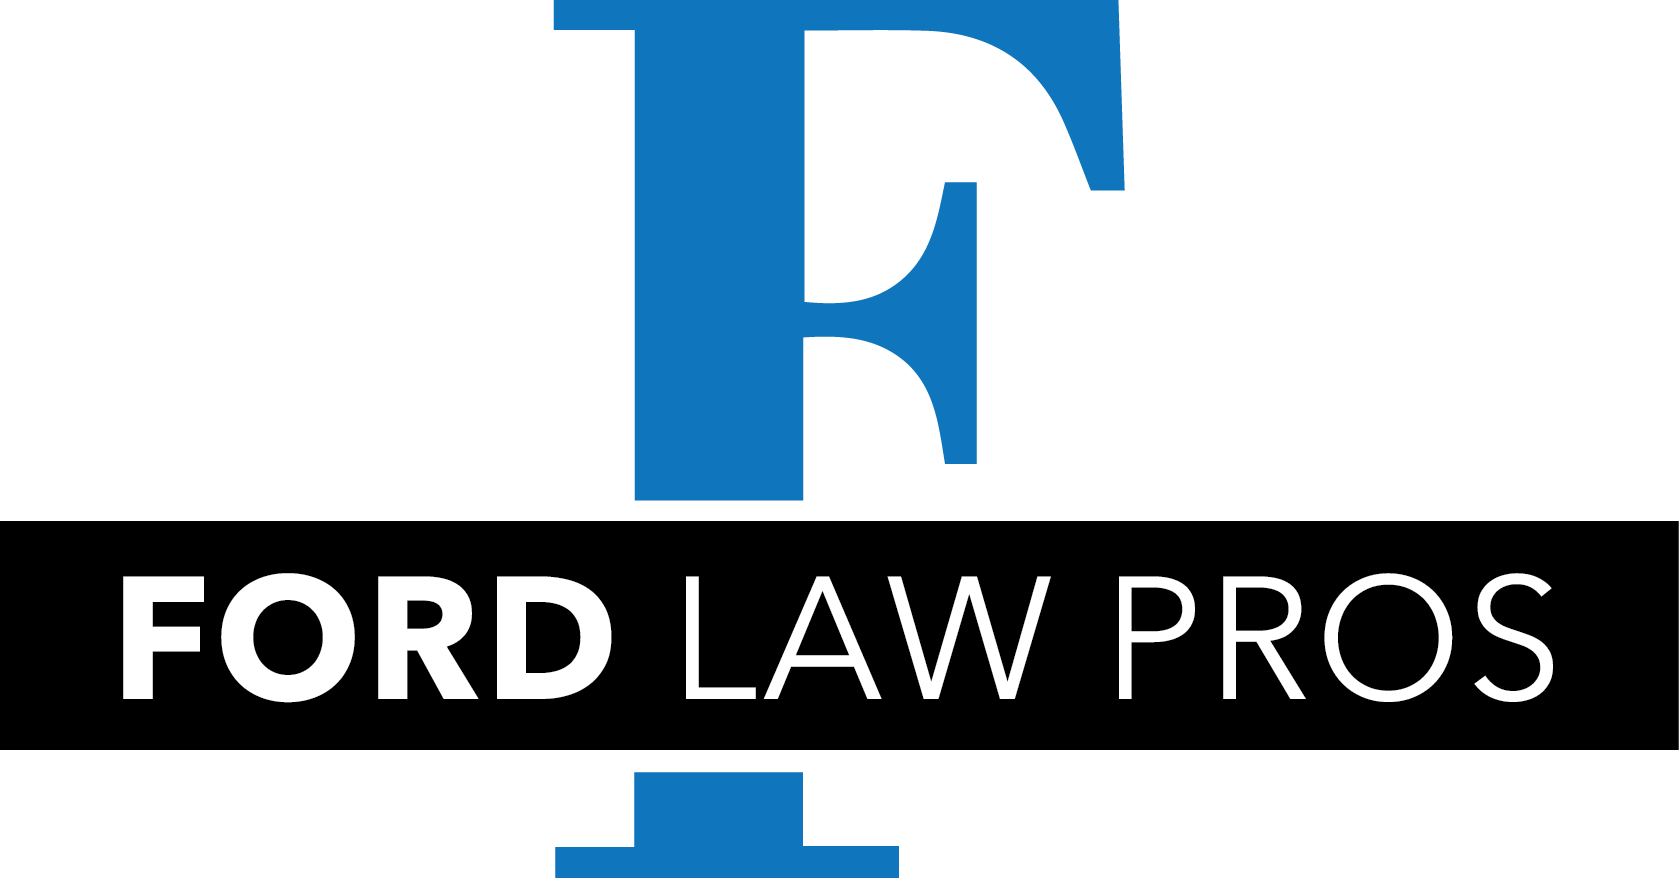 Ford Law Pros